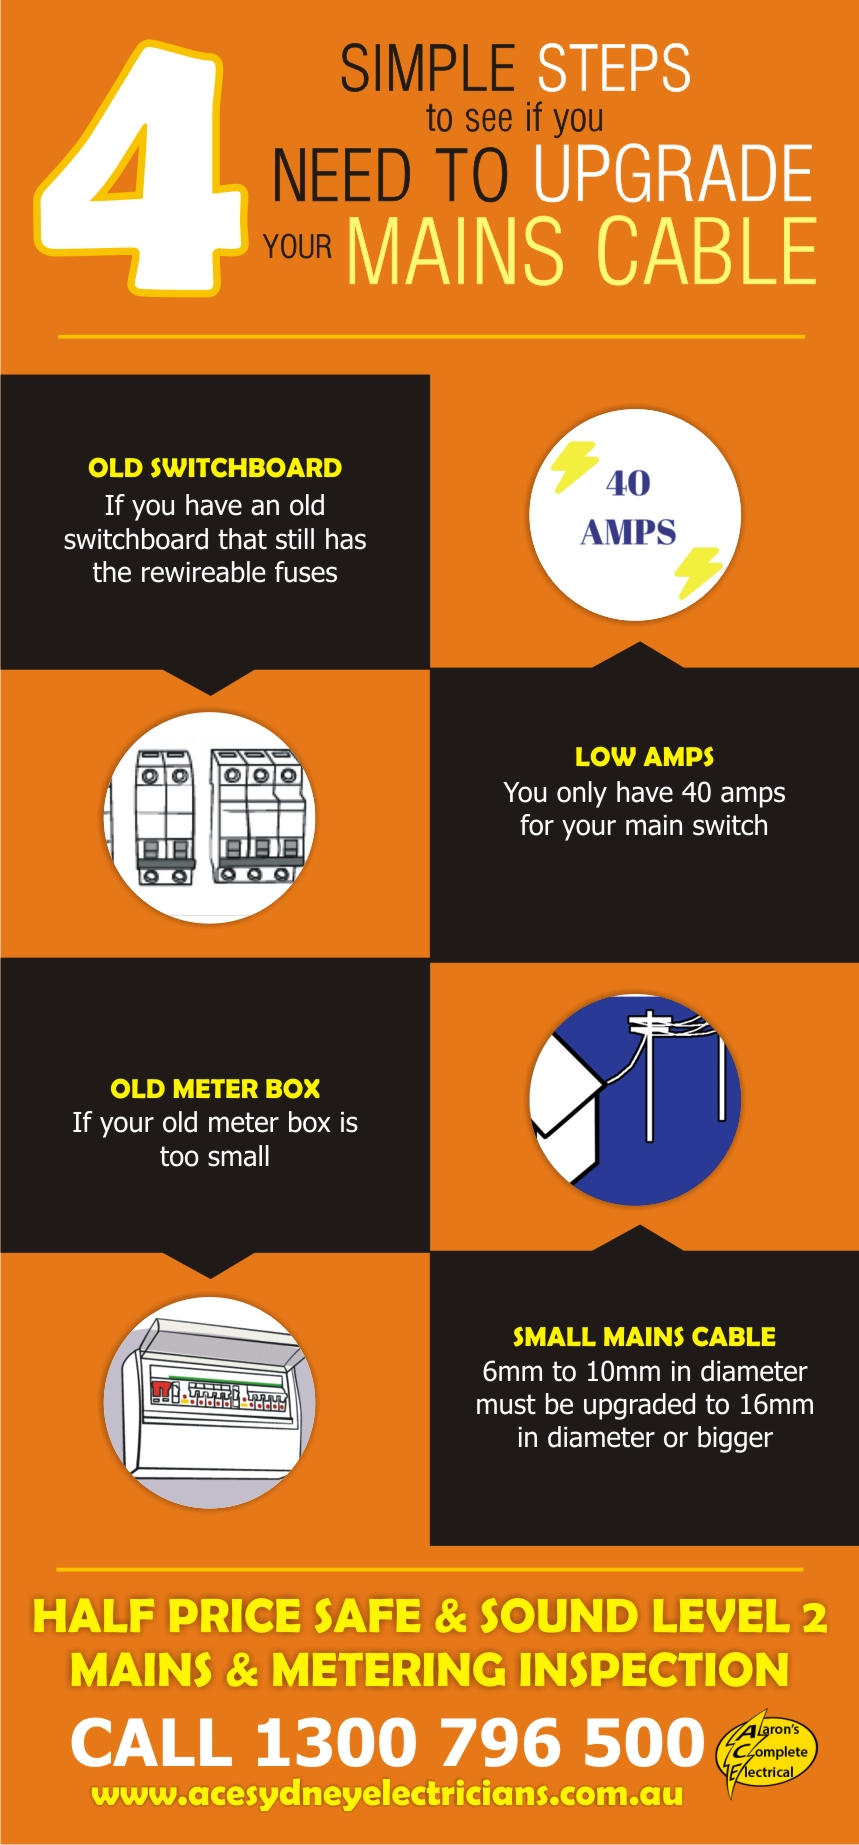 4 Simple Steps To See If You Need to Upgrade Your Mains Cable